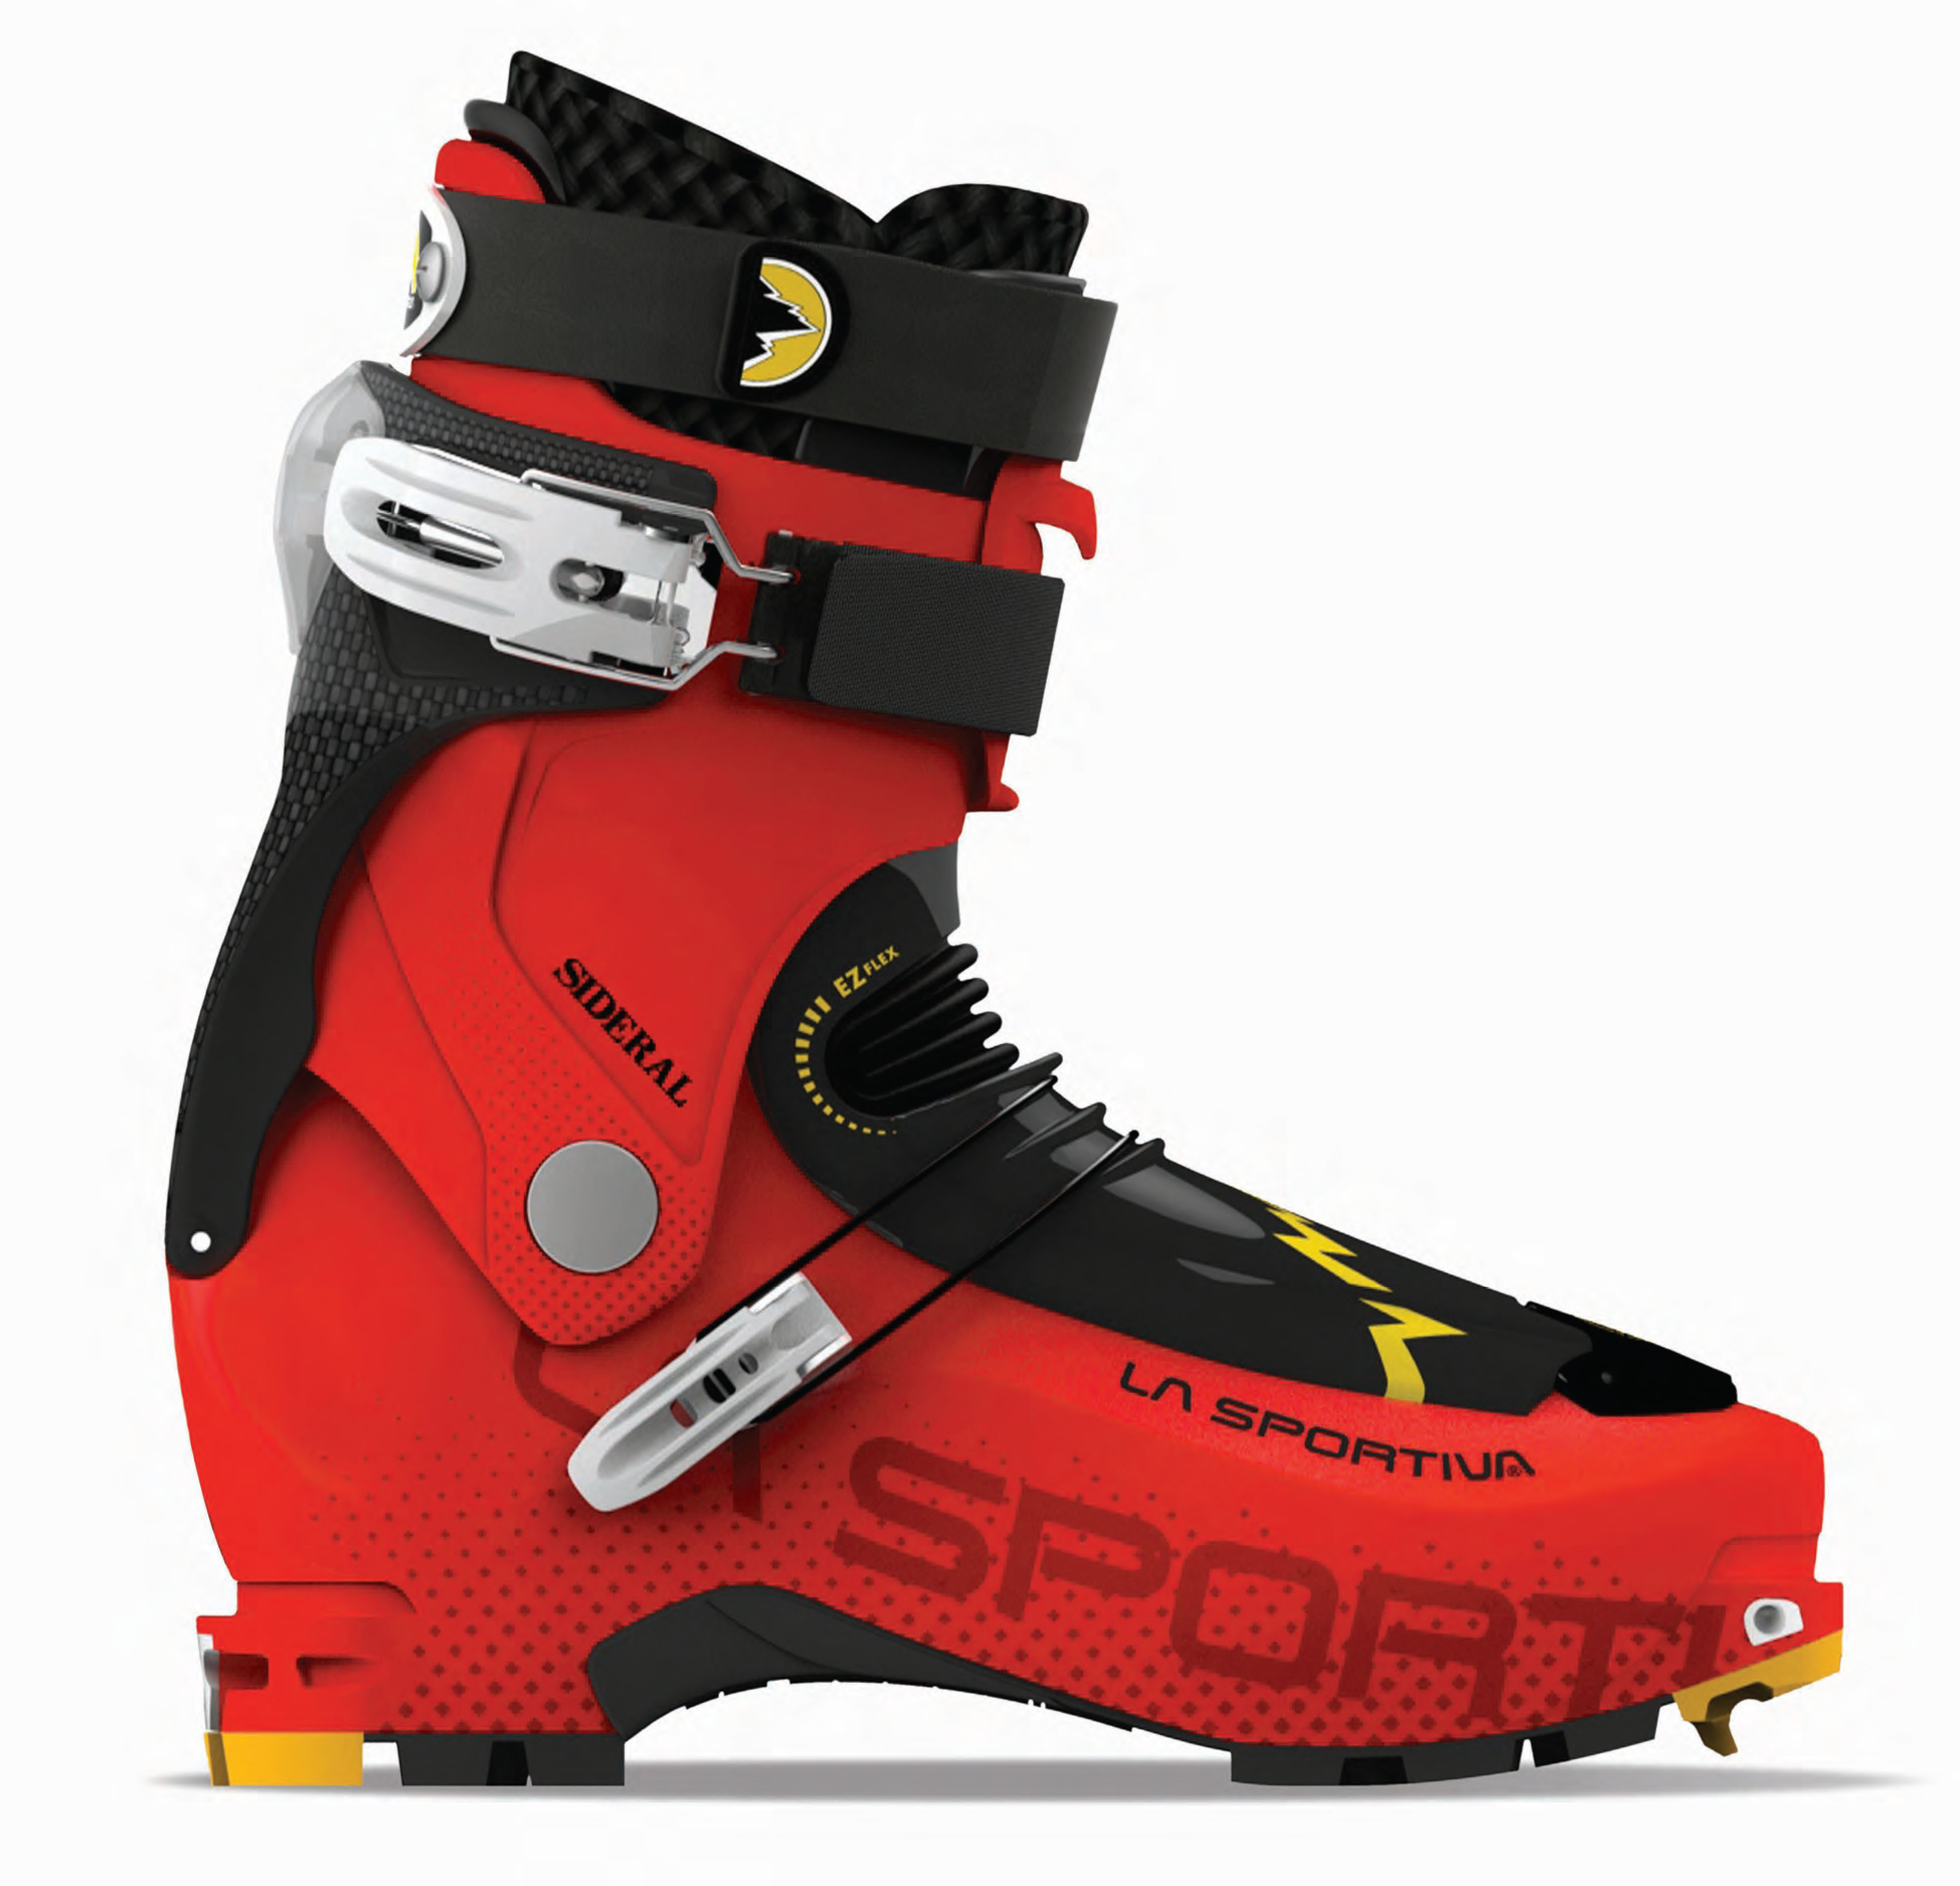 The 1165-gram Sideral is ultra-compact and quickly transitions from touring to ski mode using La Sportiva's patent-pending Fast Lock SystemT to create a boot that suits a wide variety of backcountry enthusiasts.